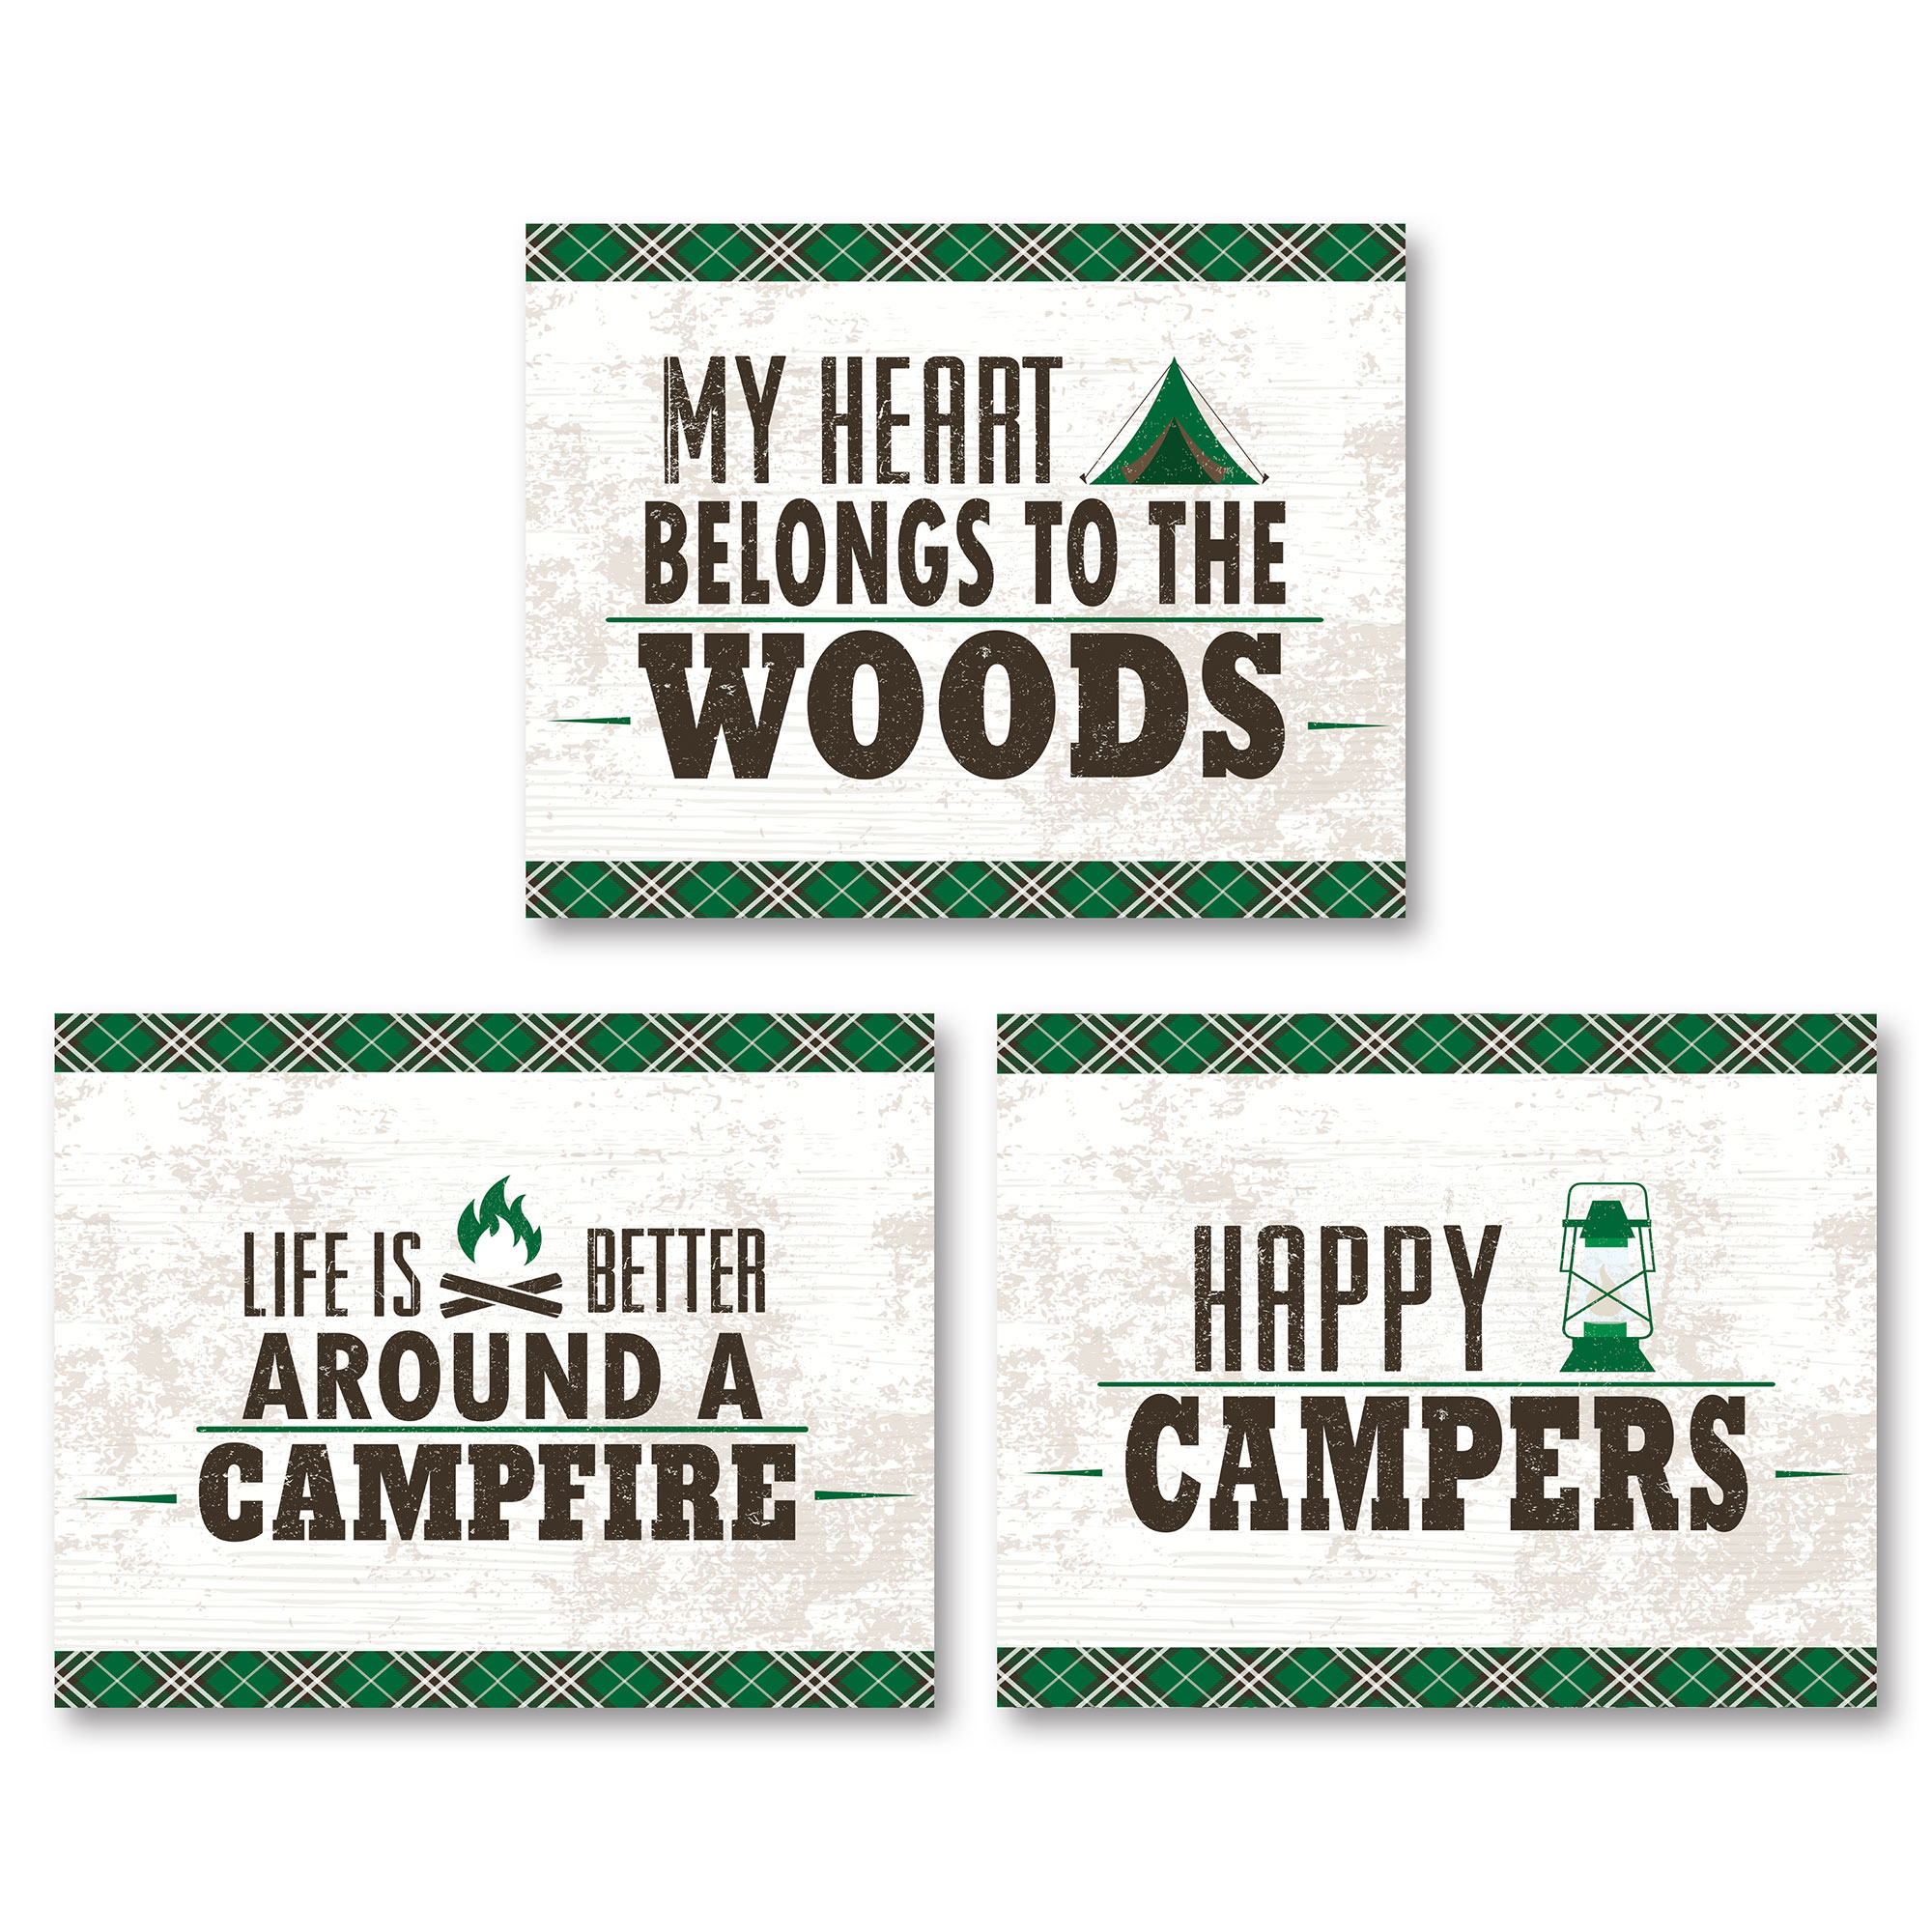 Green and White My Heart Belongs To The Woods, Happy Campers and Life Is Better Around A Campfire; Three 14x11in Unframed Paper Posters